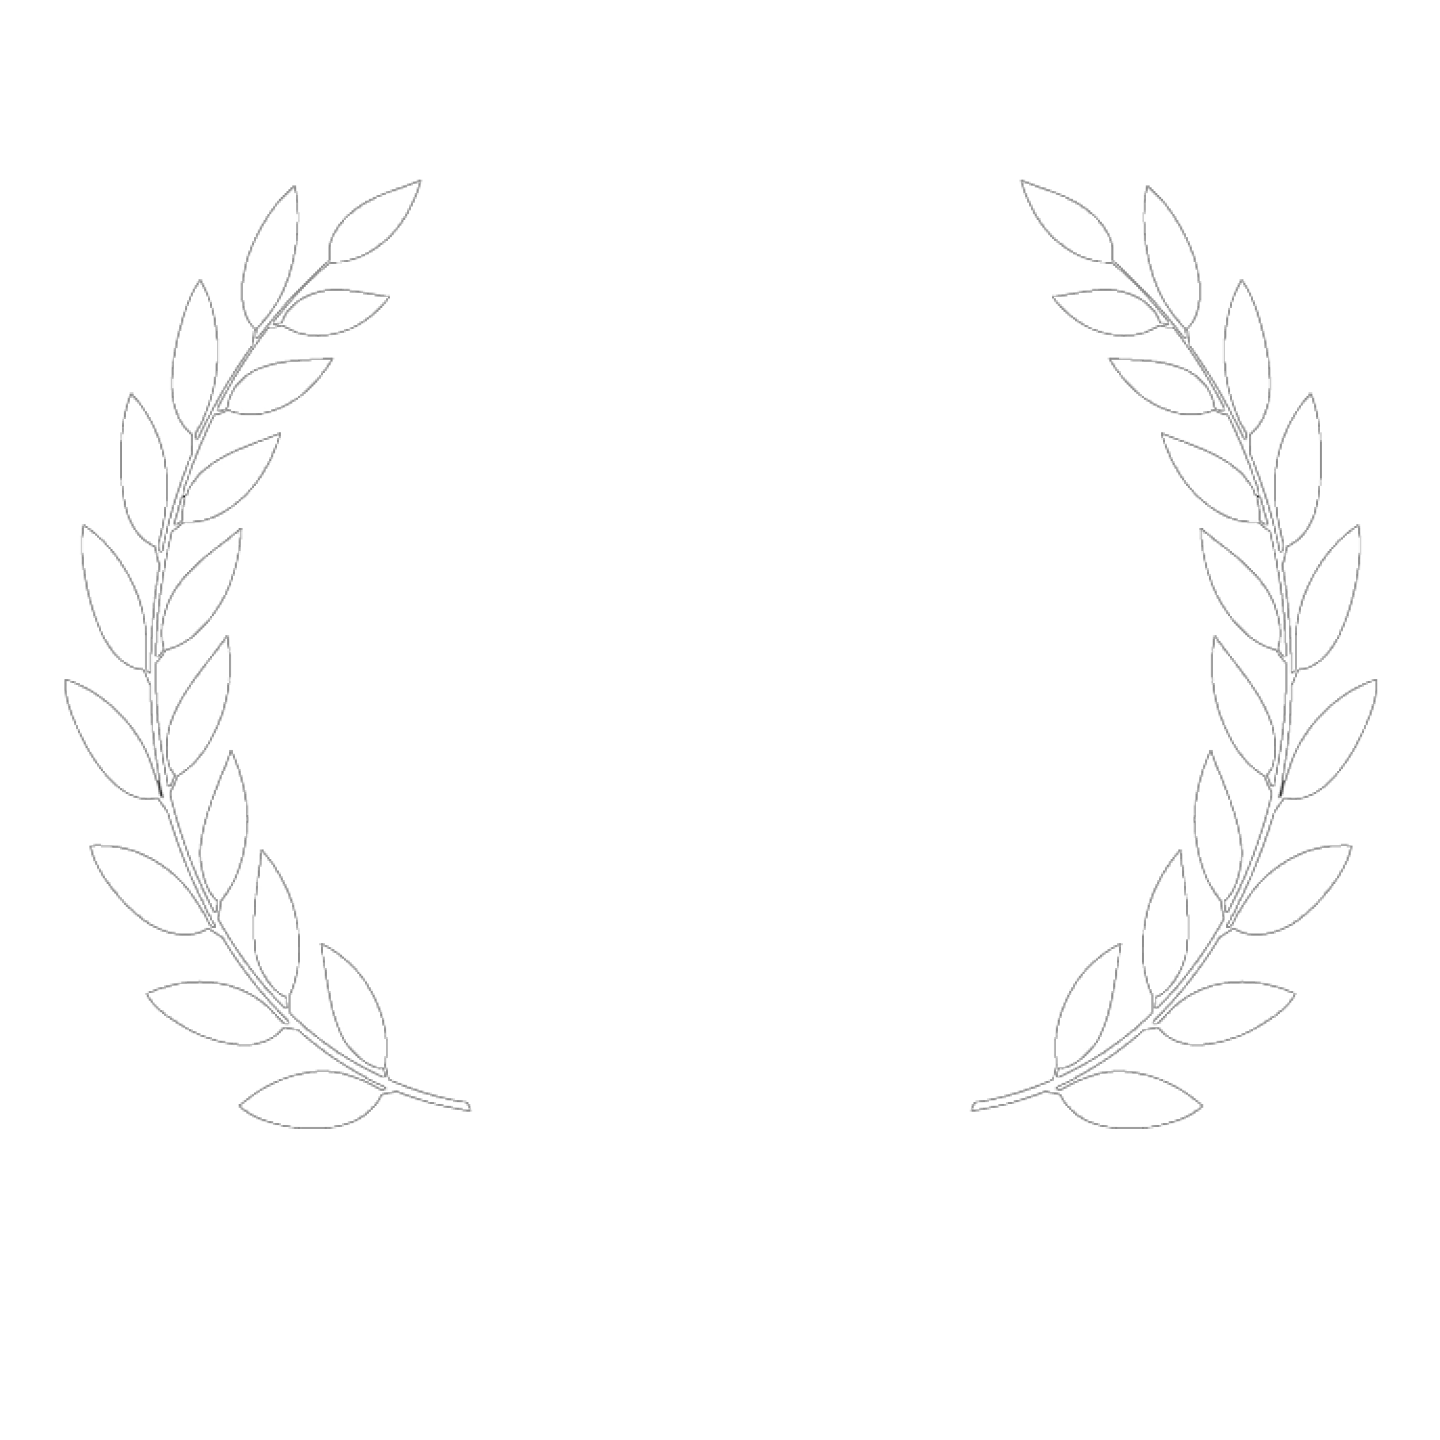 Off West End Award - Best Performance Ensemble